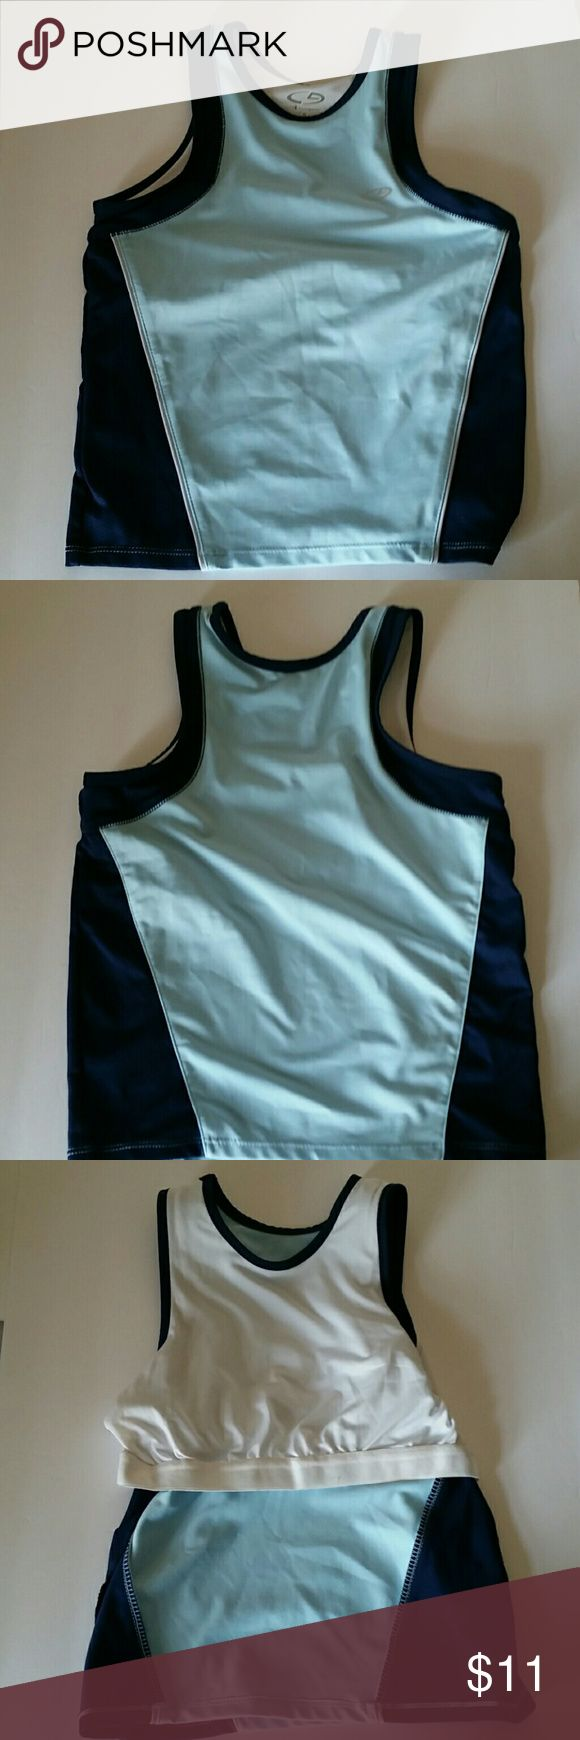 "Champion workout top with built in sports bra Size small champion workout top with built in sports bra. Measures appox 16.25"" long  from back. Appox 14"" bust. Approx 13"" waist. Navy& light blue colors Champion Tops Tank Tops"